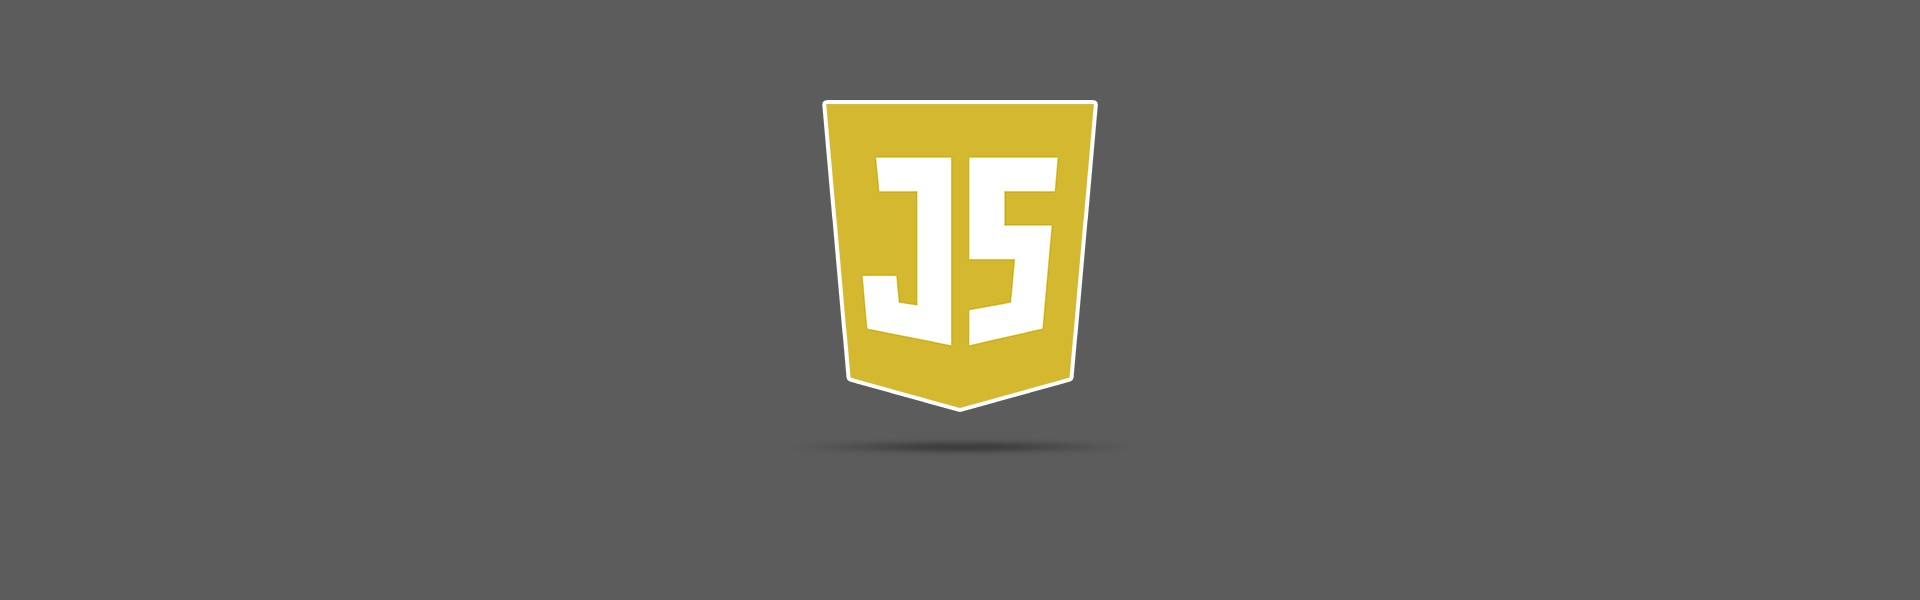 Top-20-JavaScript-Frameworks-Which-One-To-Choose